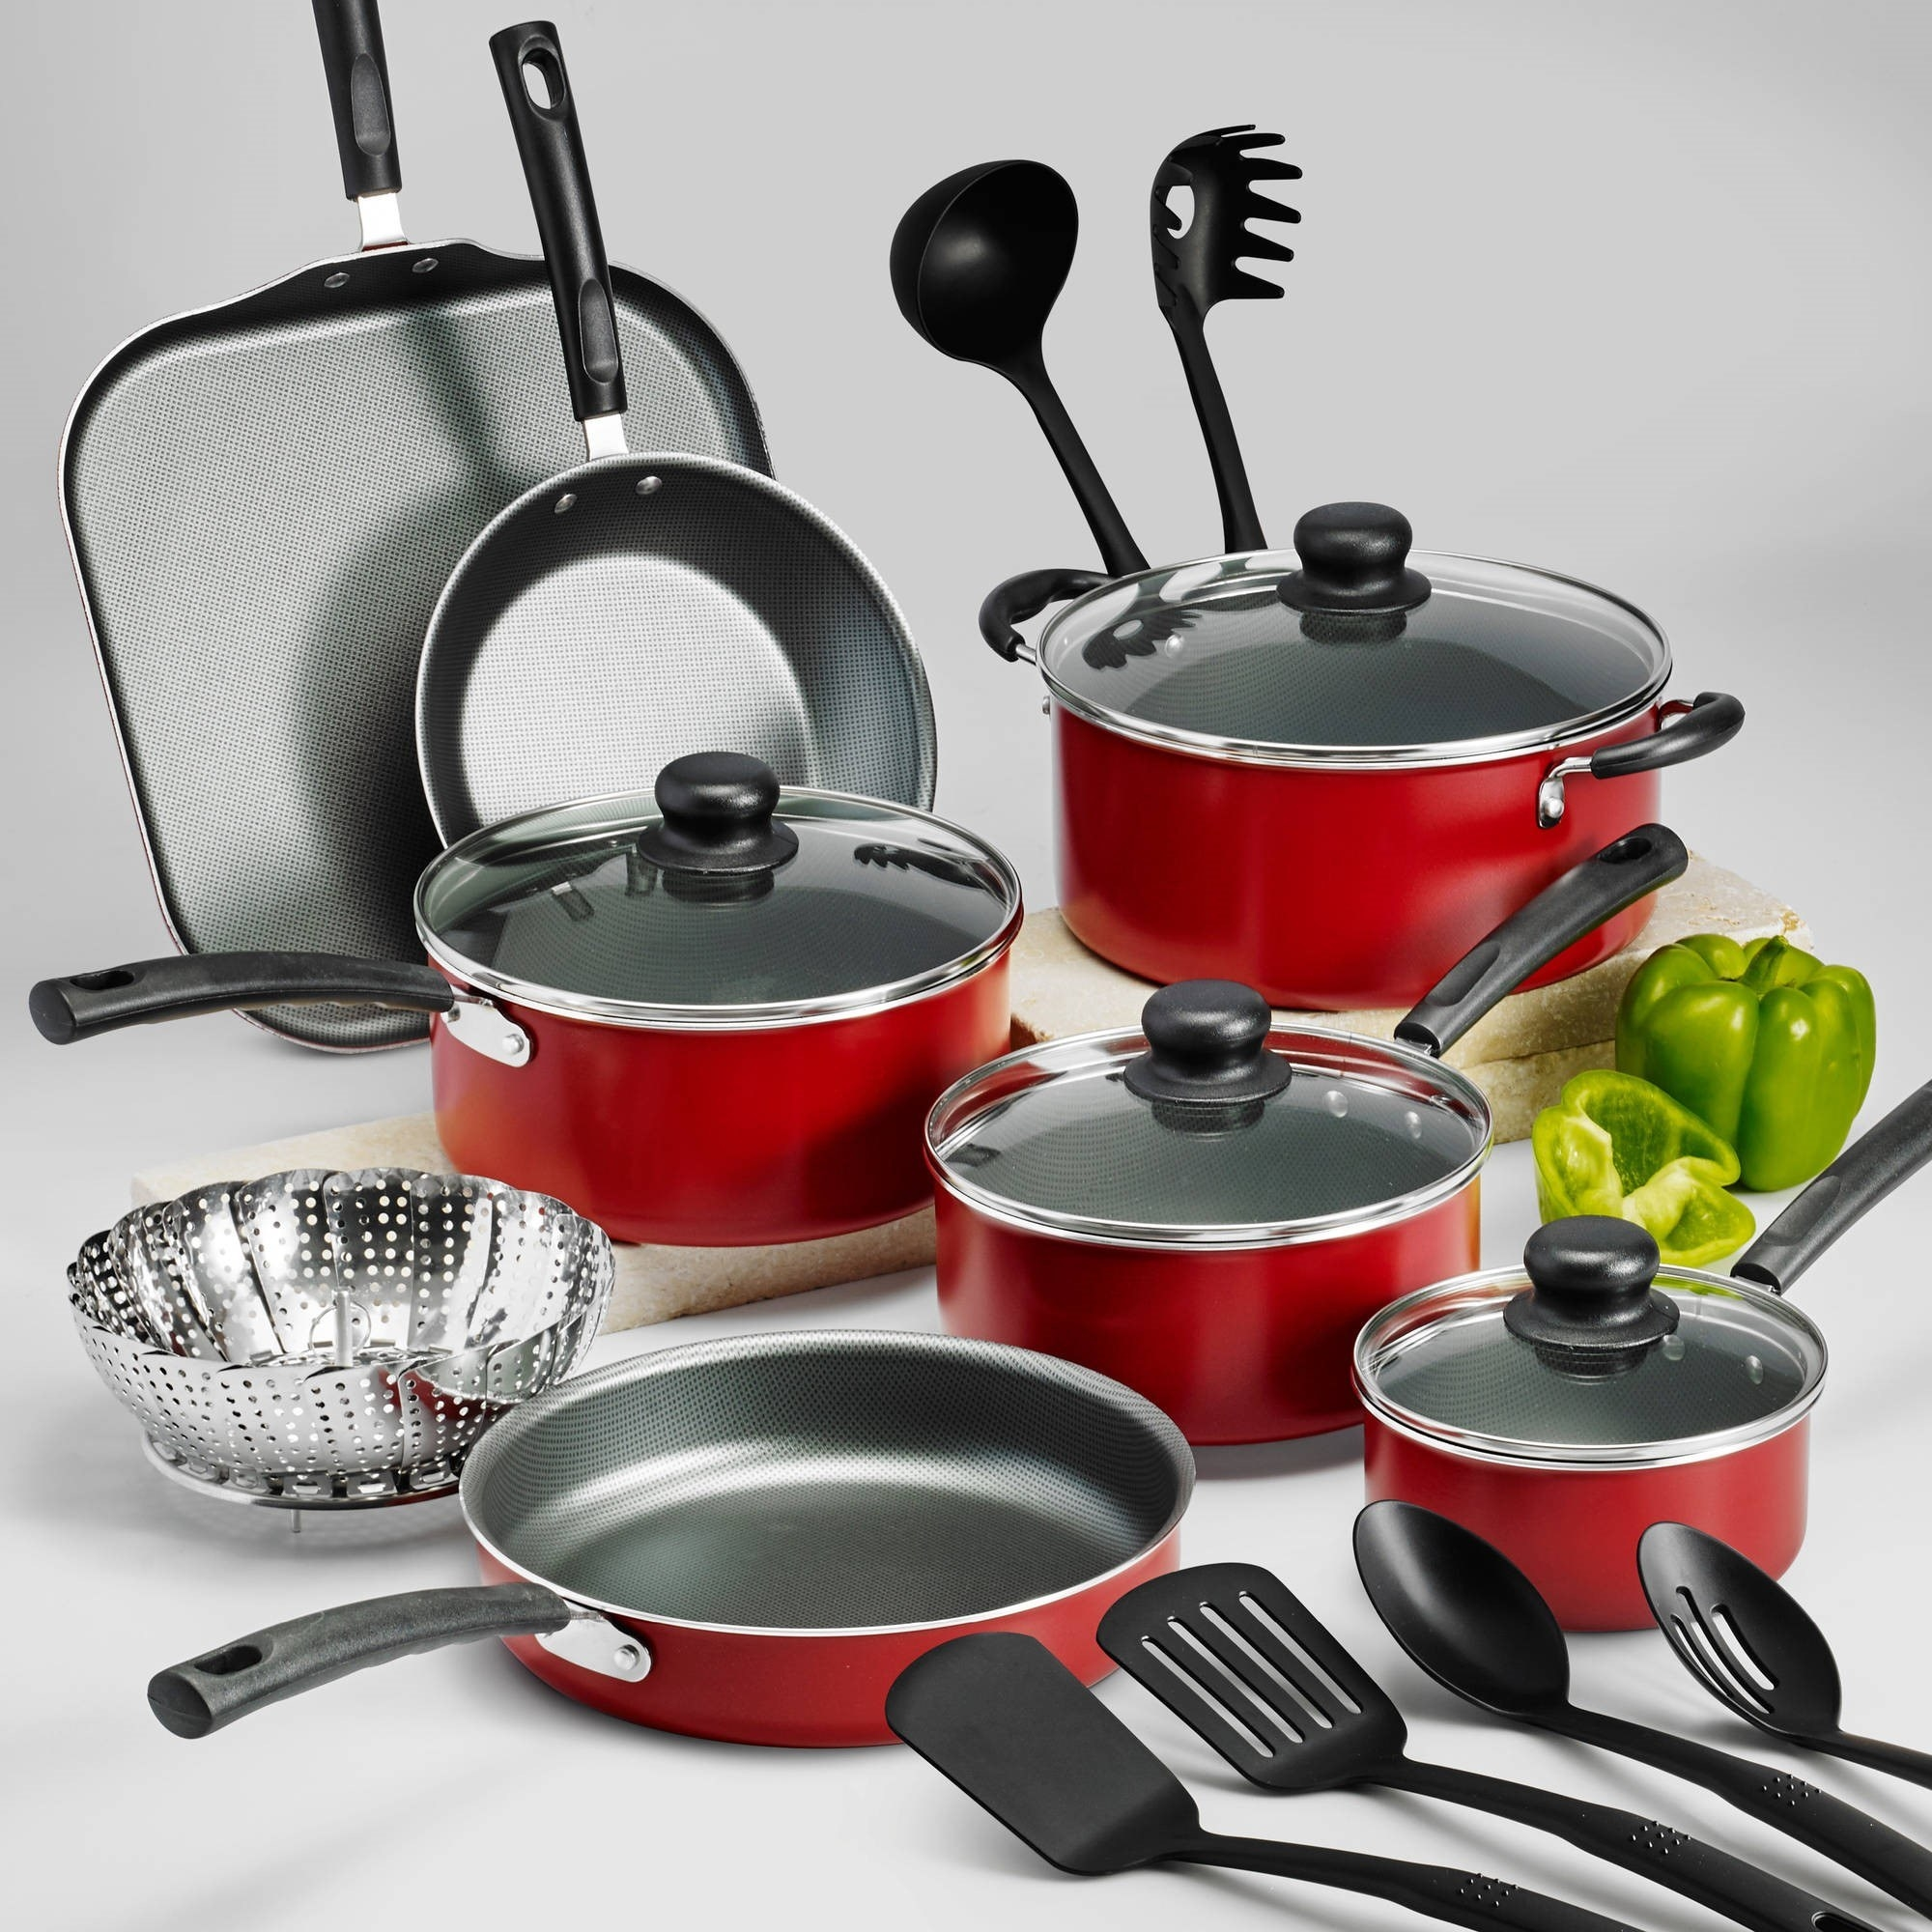 The set in red, with pans, pots, and utensils